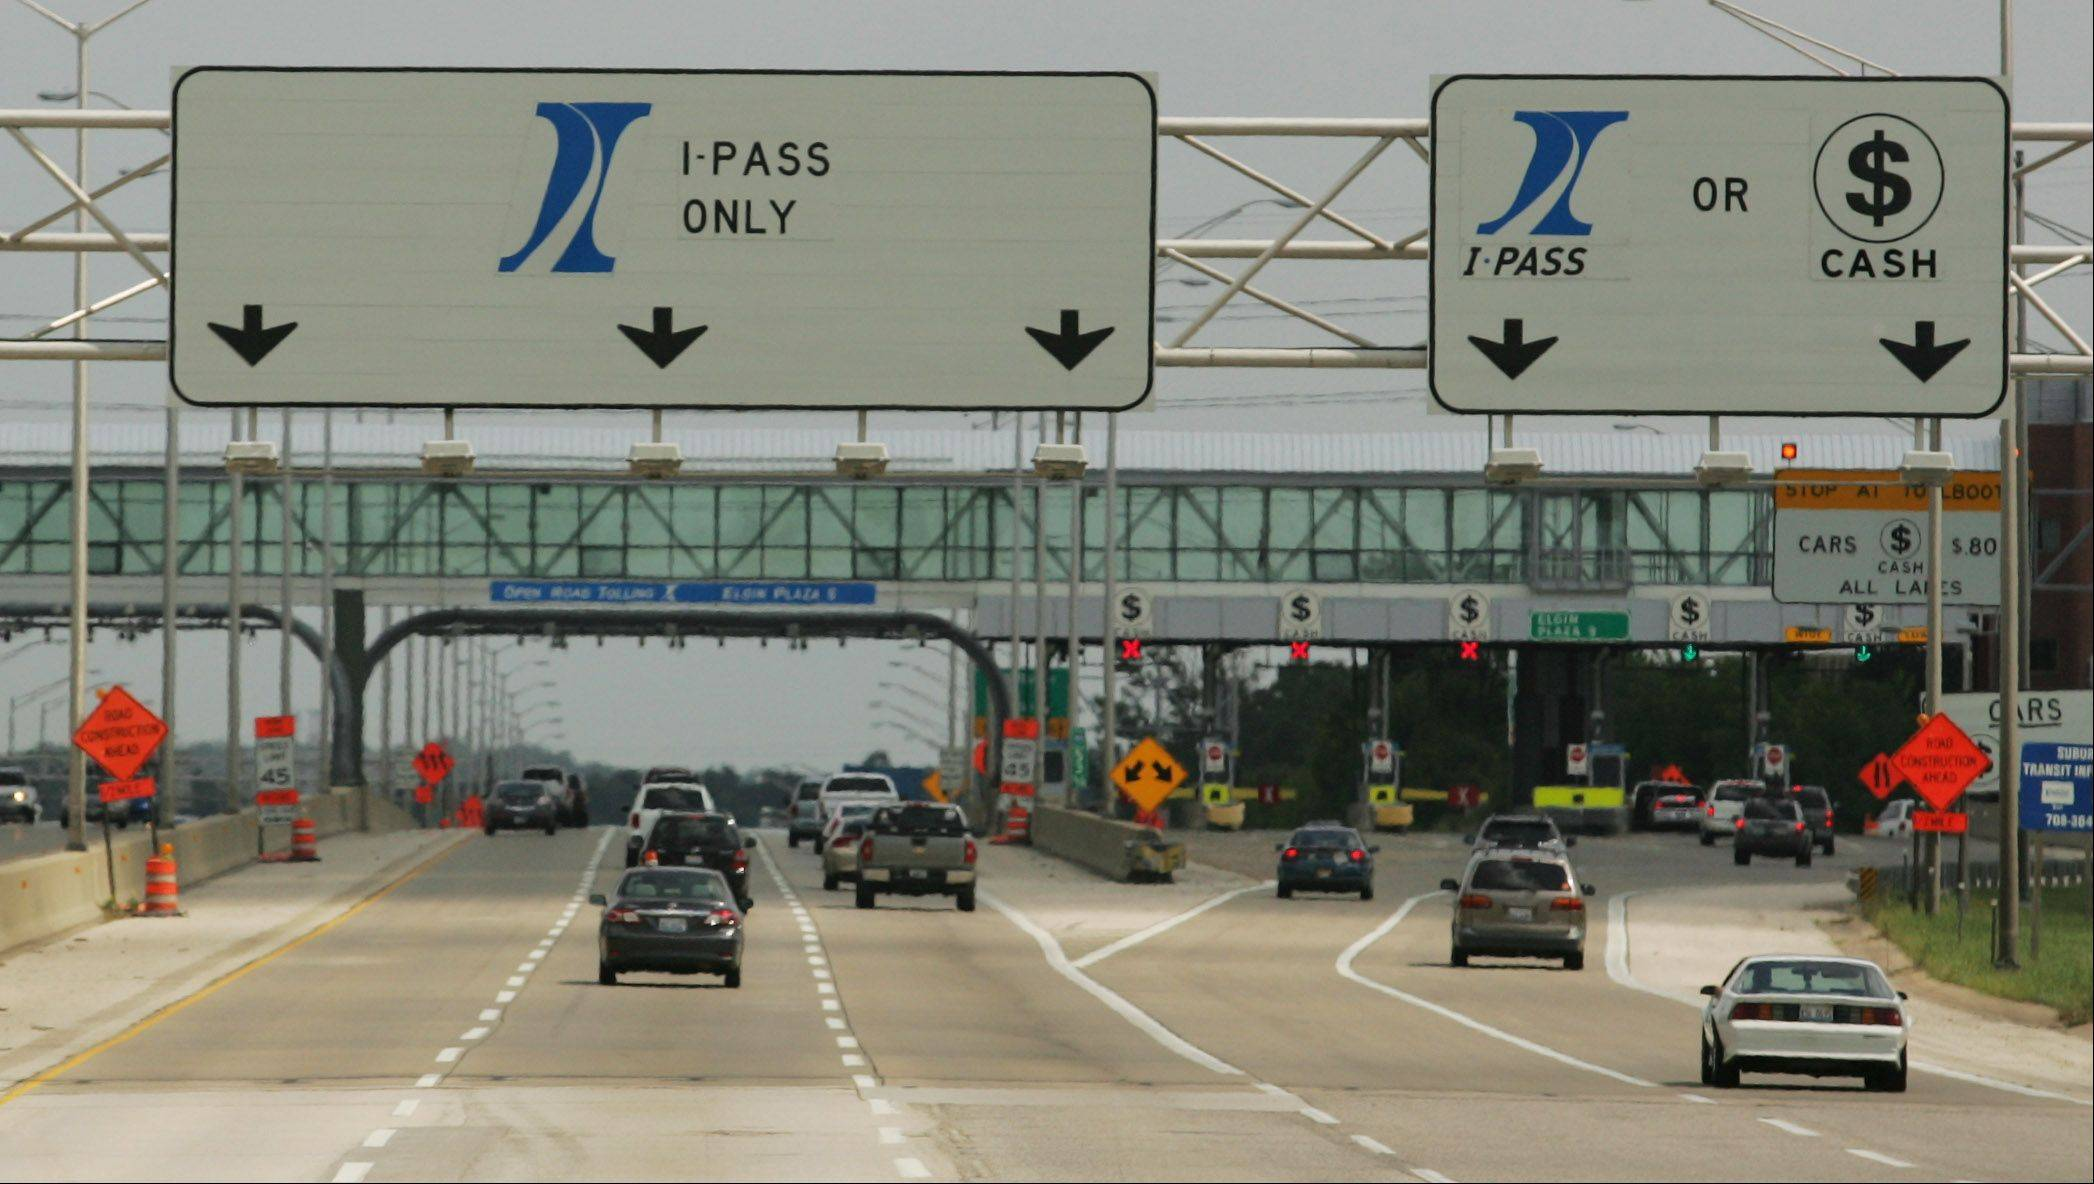 As rate hike looms, tollway workers get free I-PASS